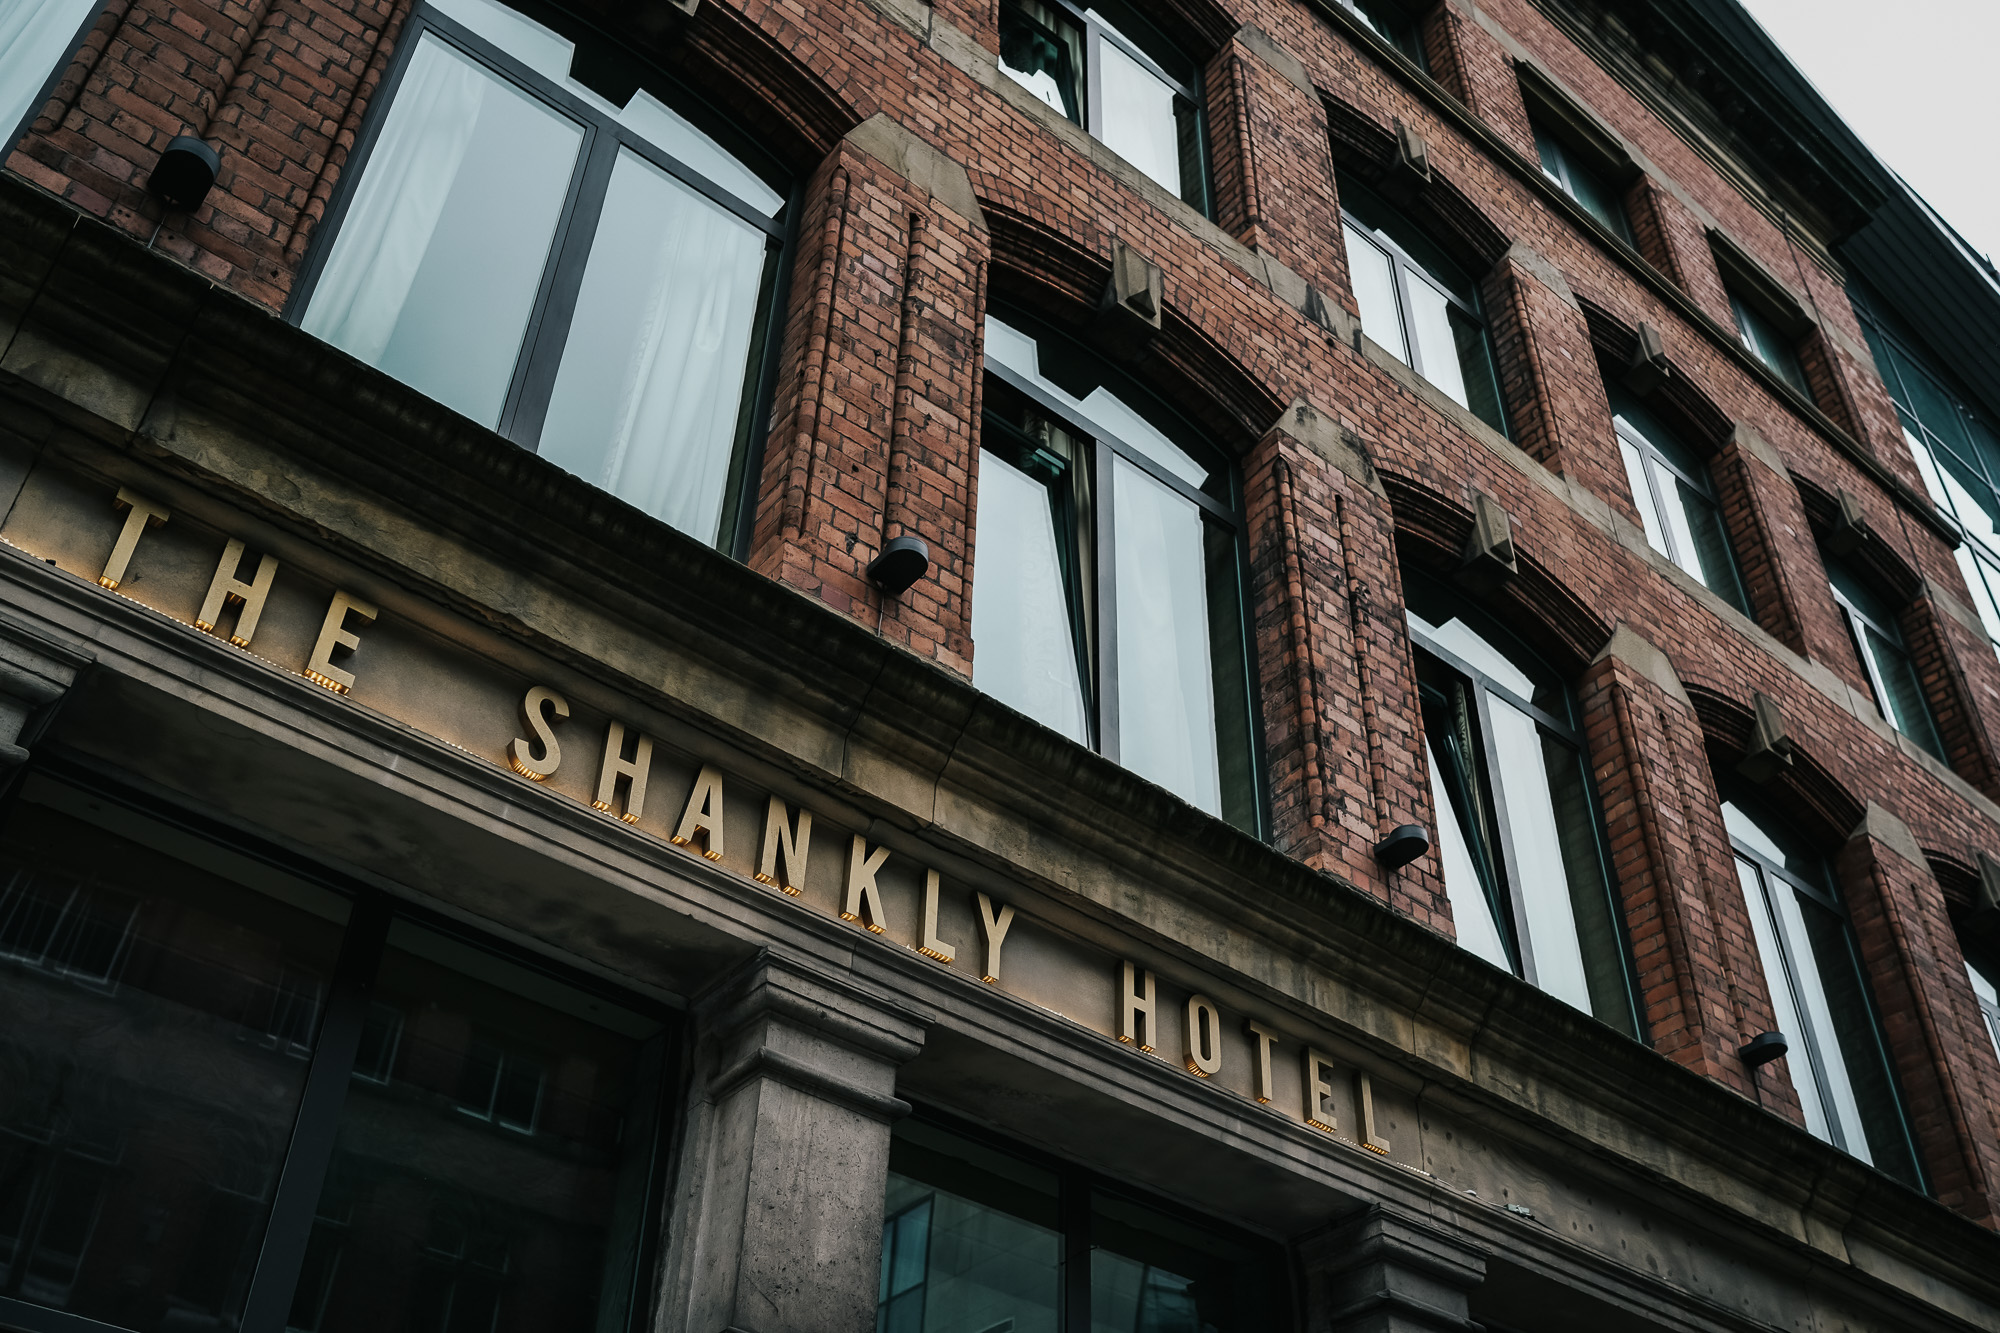 The Shankley Hotel Liverpool City Centre Wedding Photographer (2 of 51).jpg